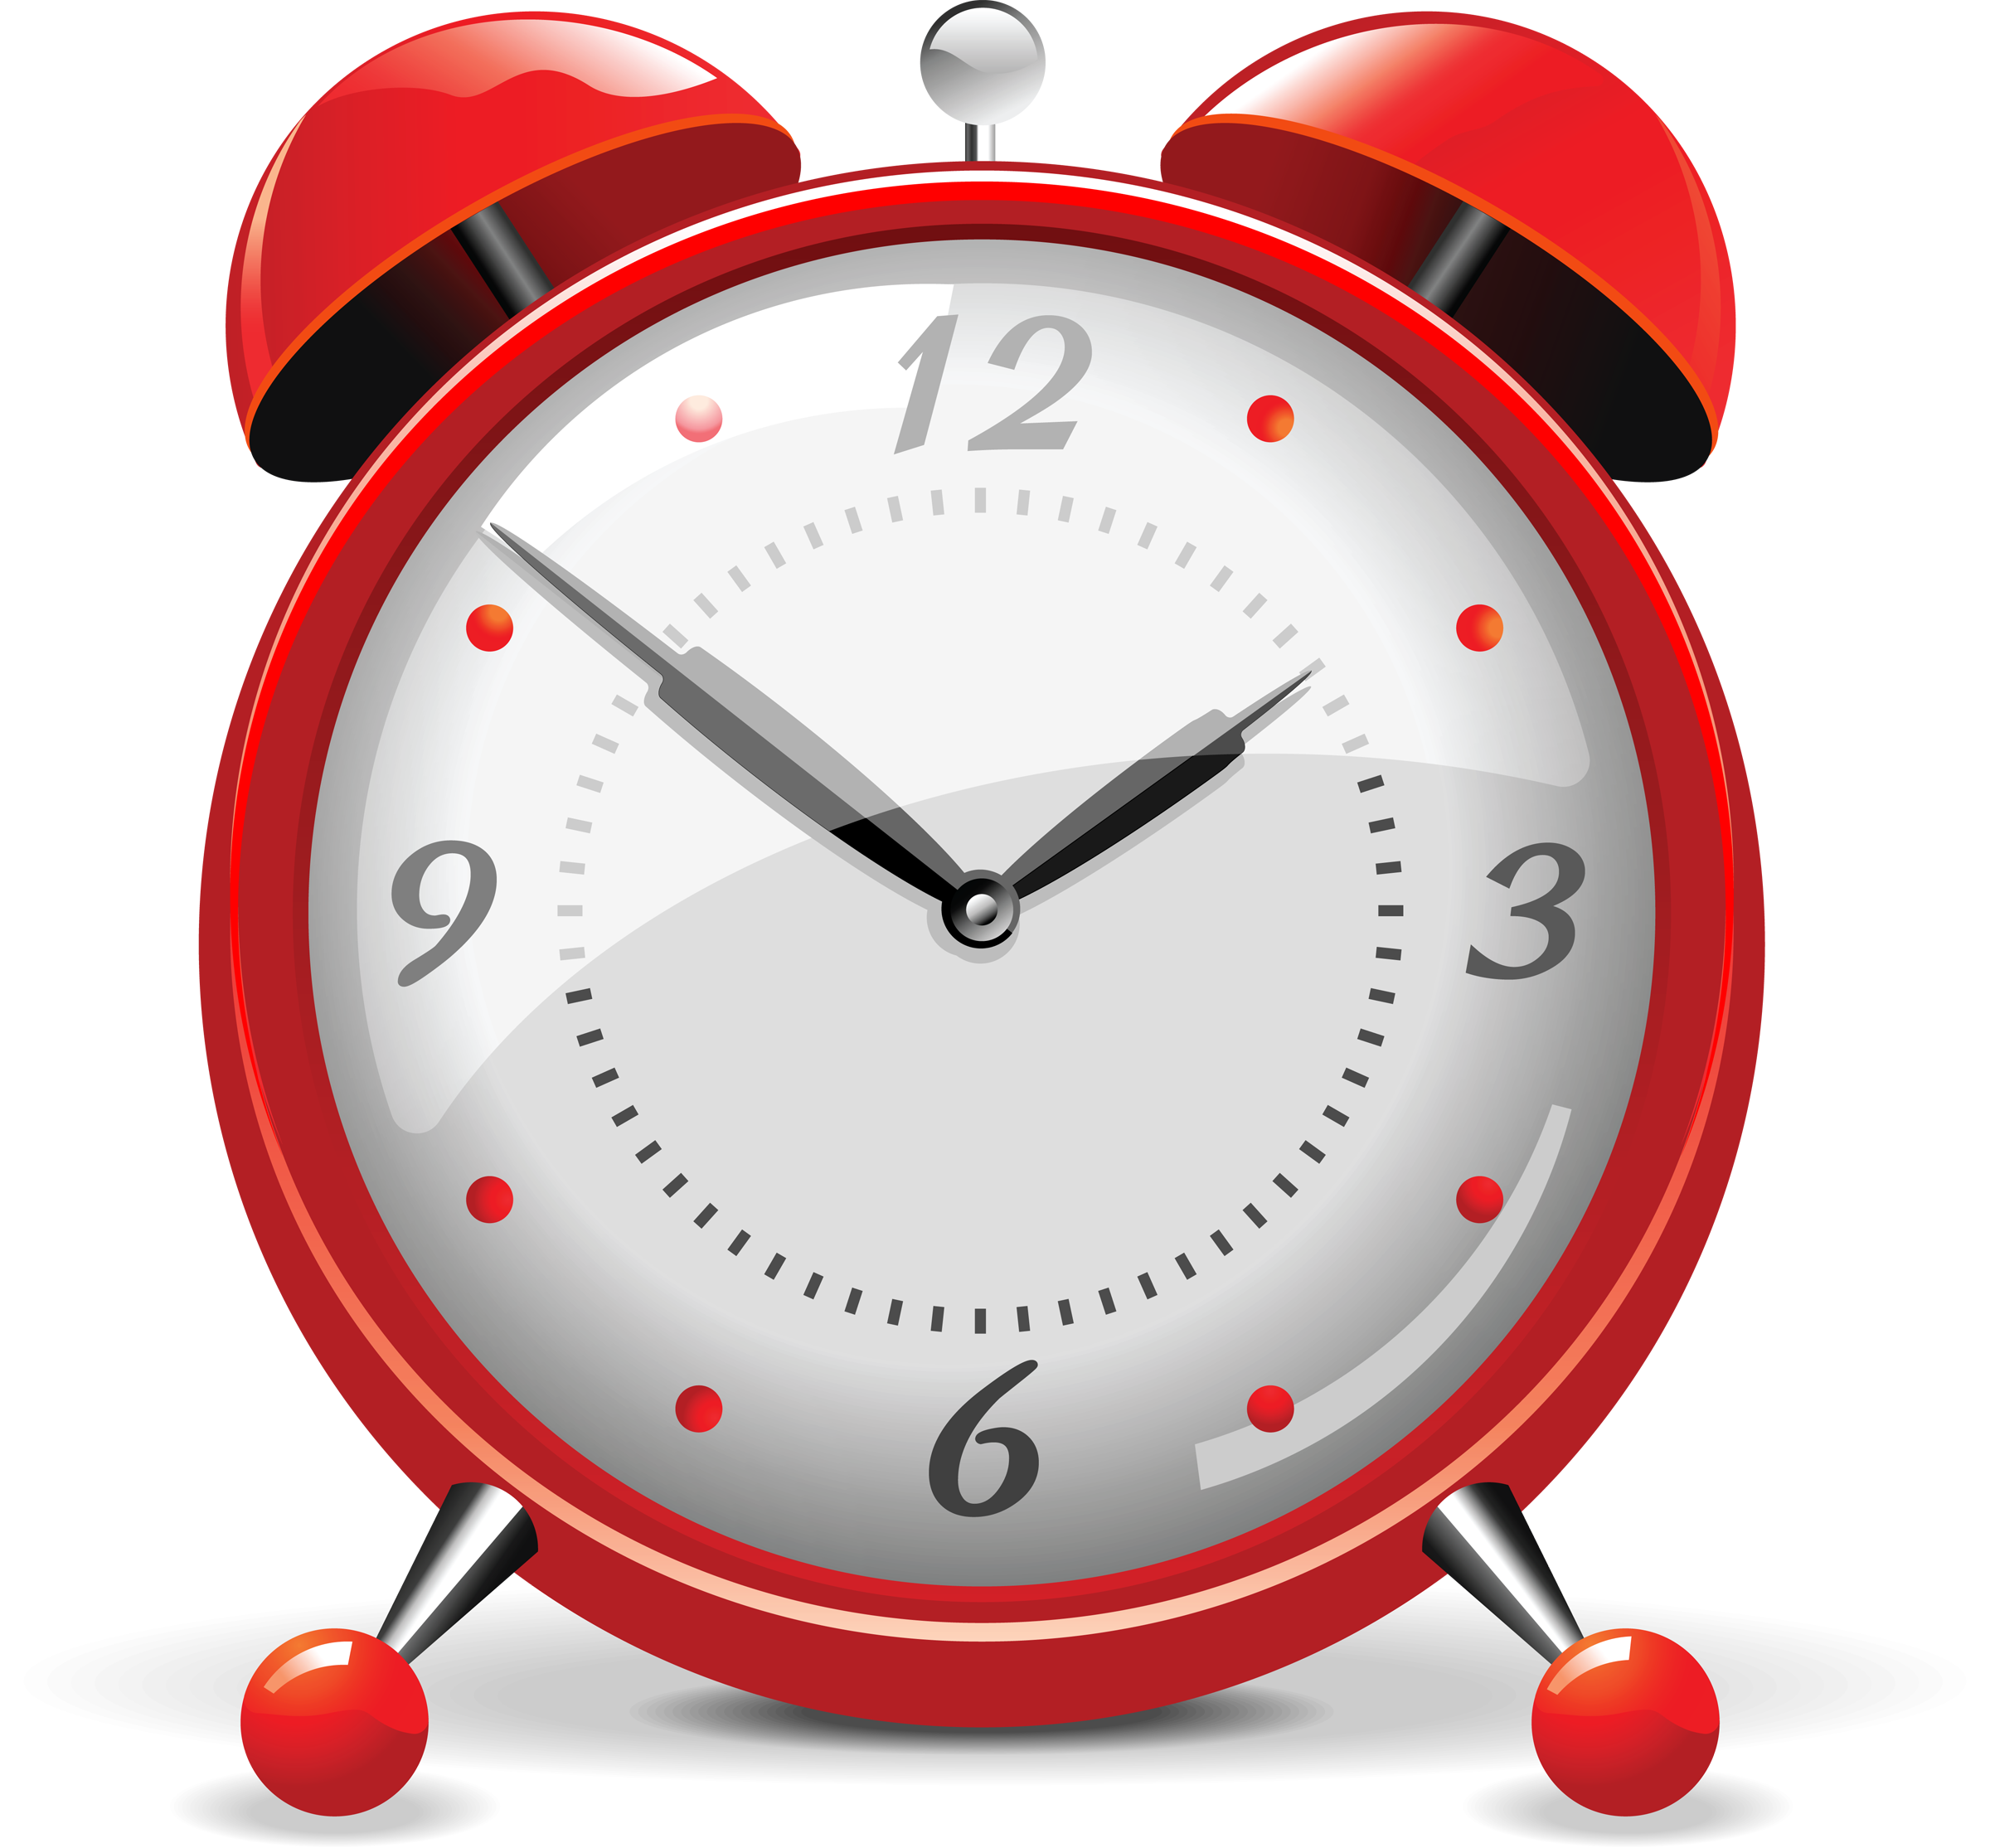 Watch clipart png. Red clock alarm